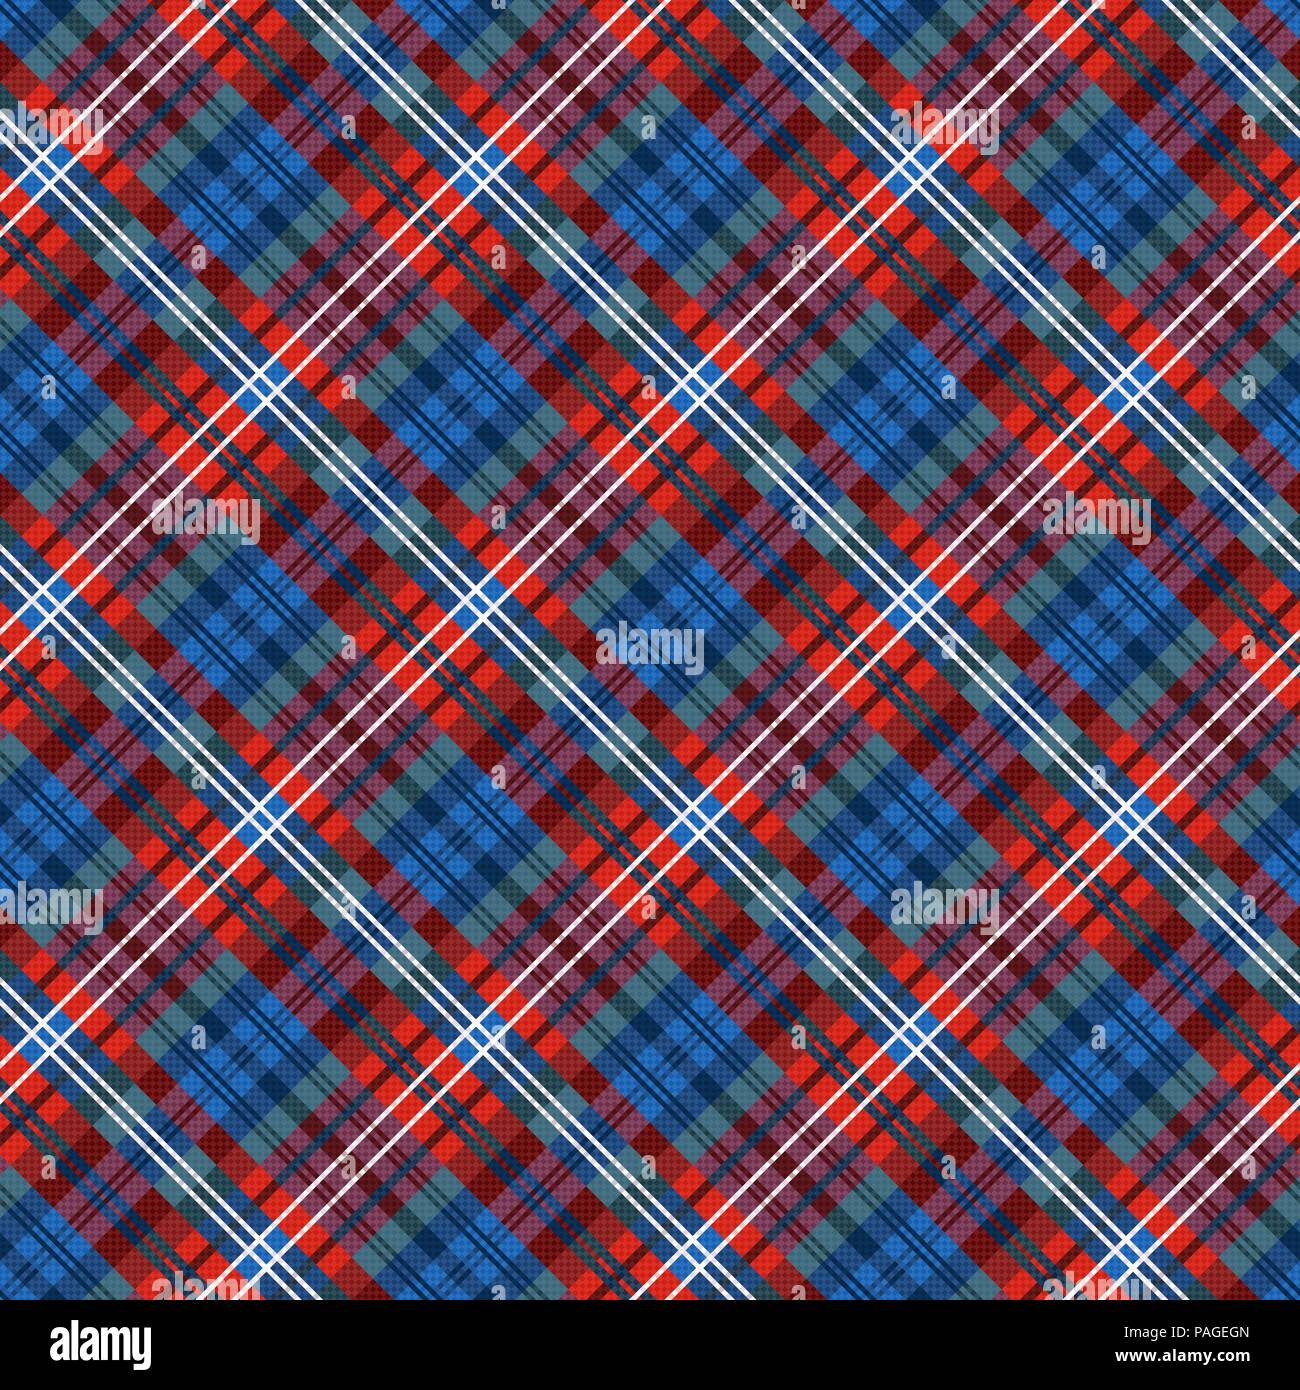 Seamless diagonal multicolor pattern mainly in red and blue hues, vector as a fabric texture - Stock Vector